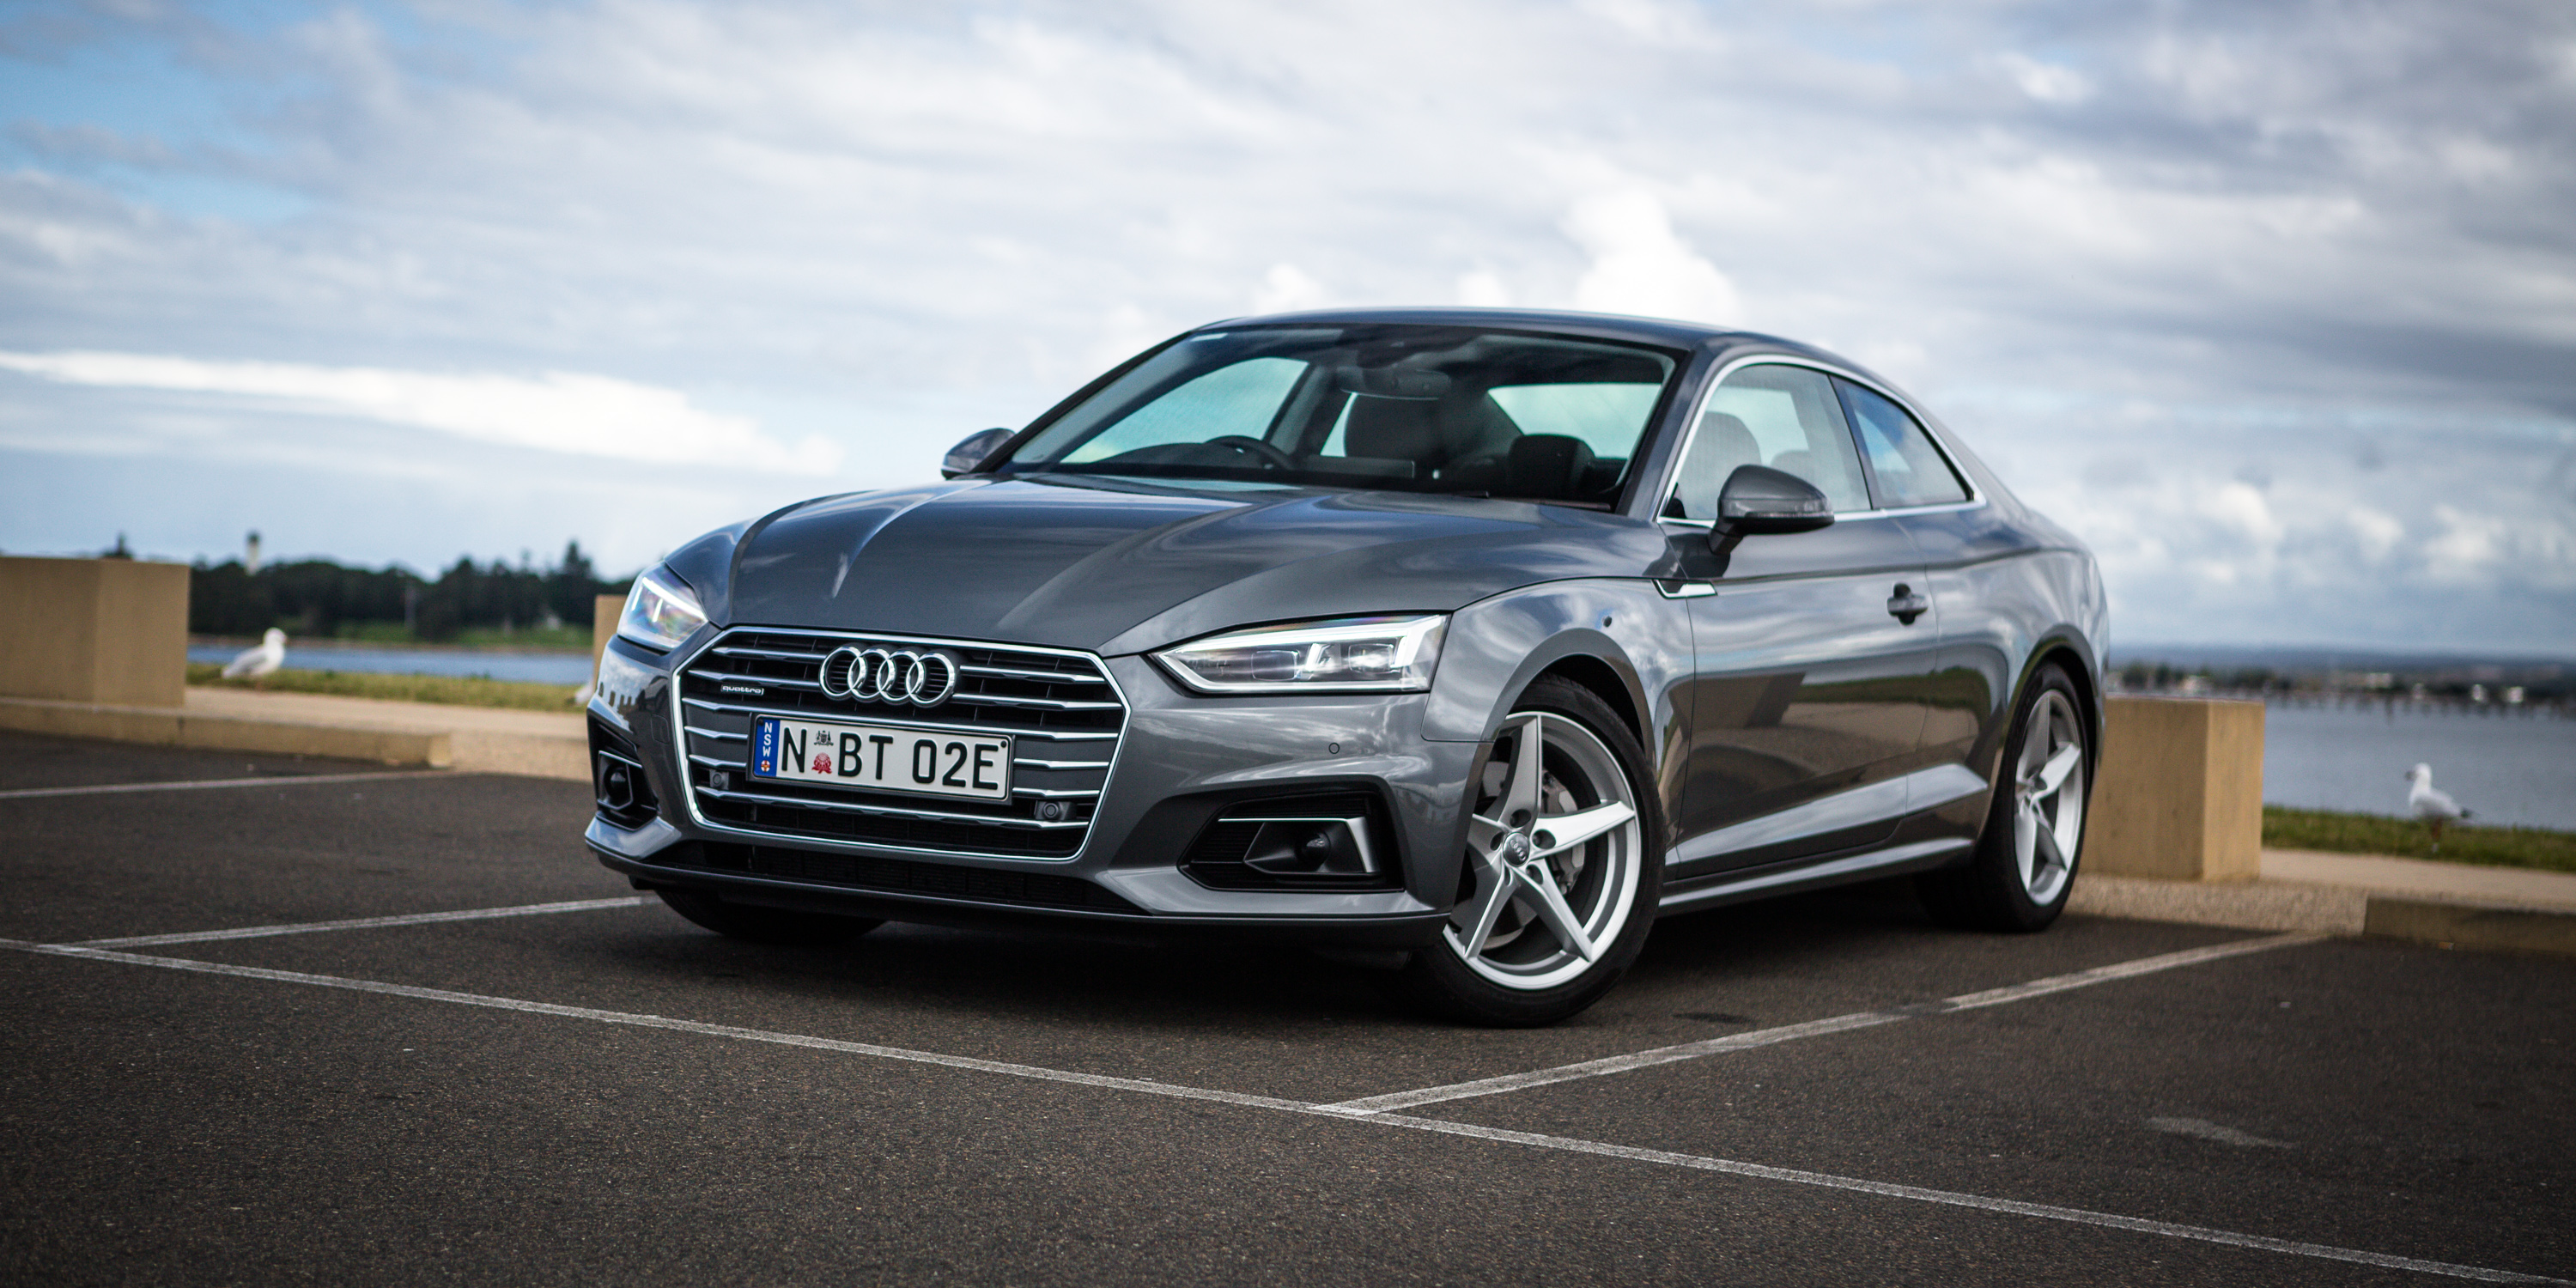 2017 Audi A5 2.0 TDI Coupe review | CarAdvice